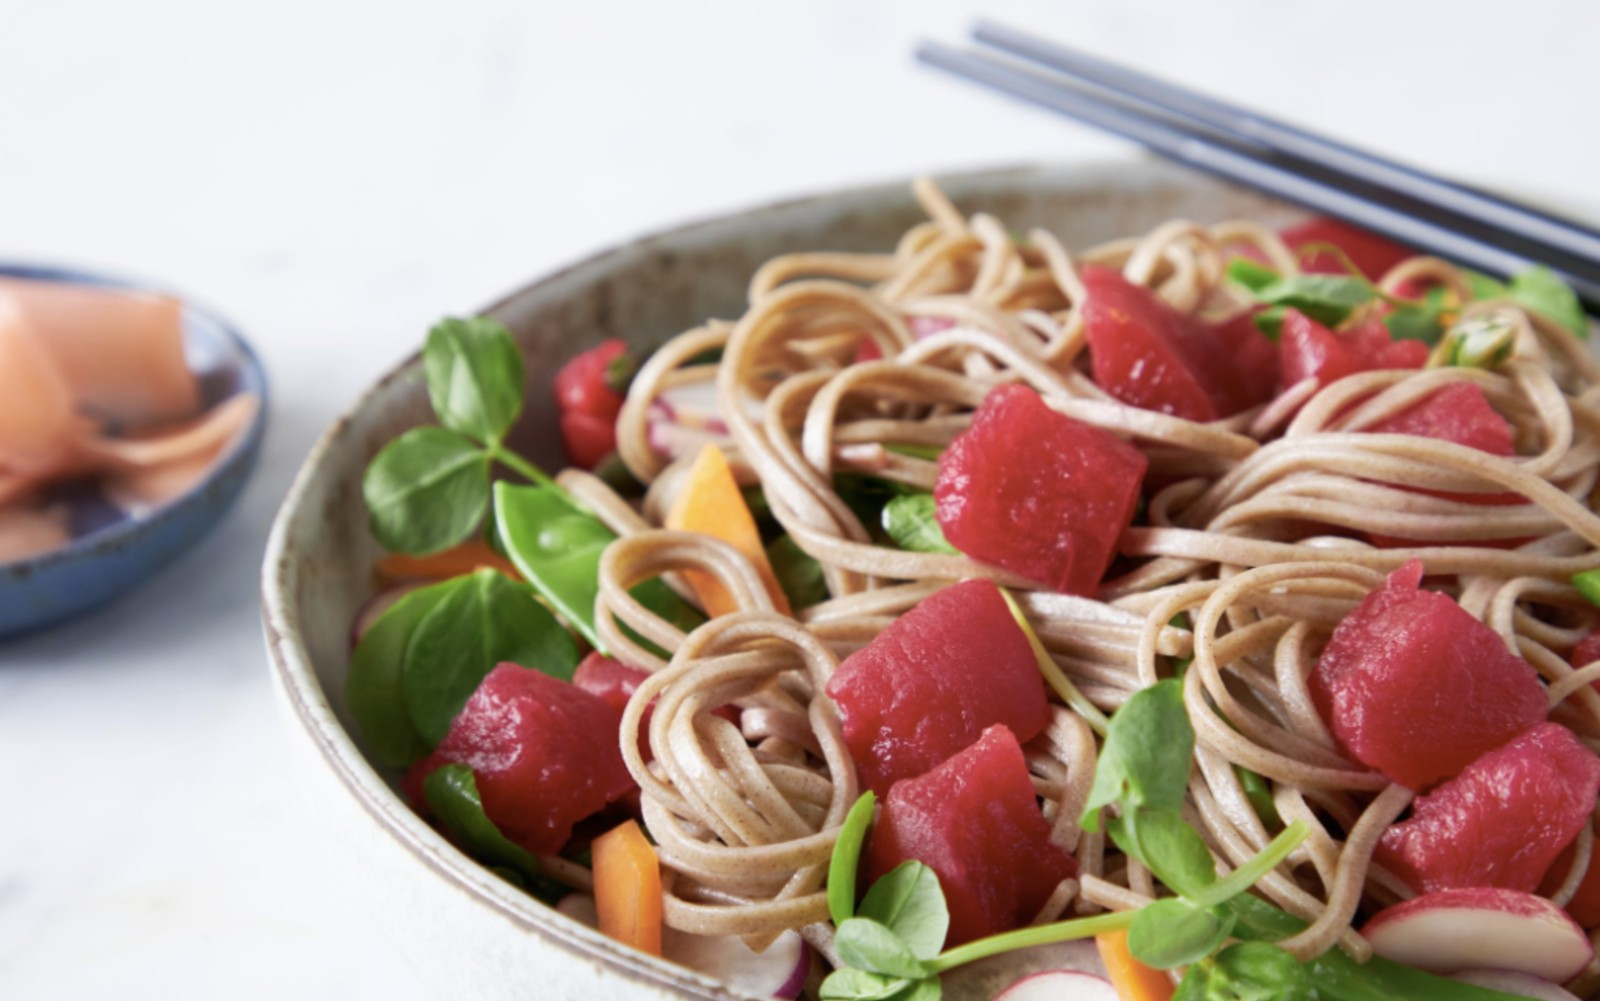 Finless Foods plant-based tuna